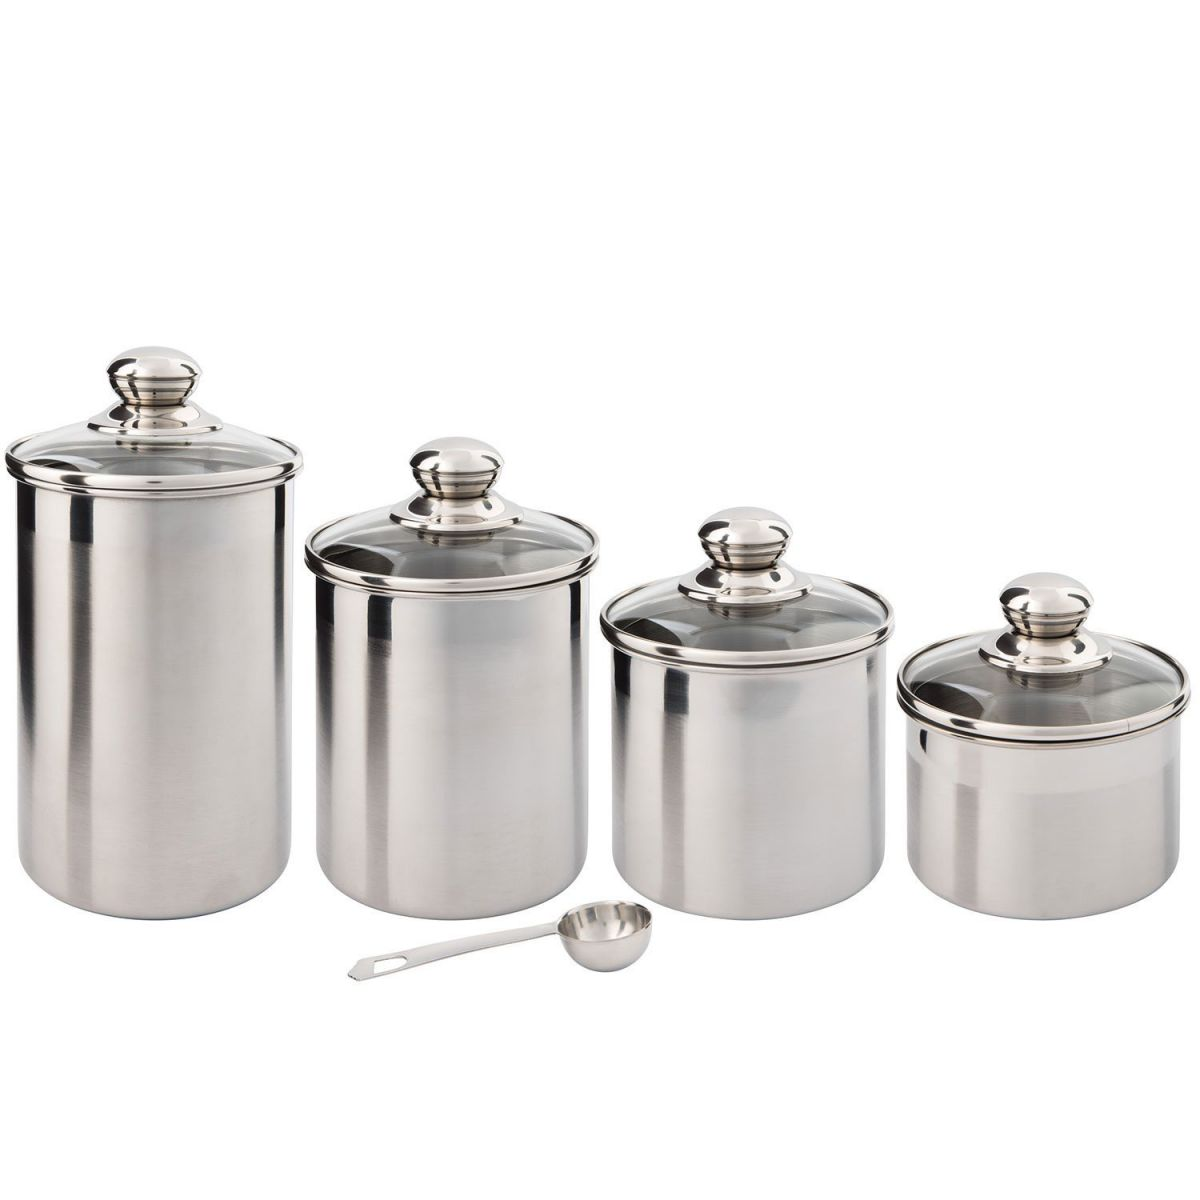 stainless steel canister sets kitchen kitchen canister sets as food storage homeindec 7676